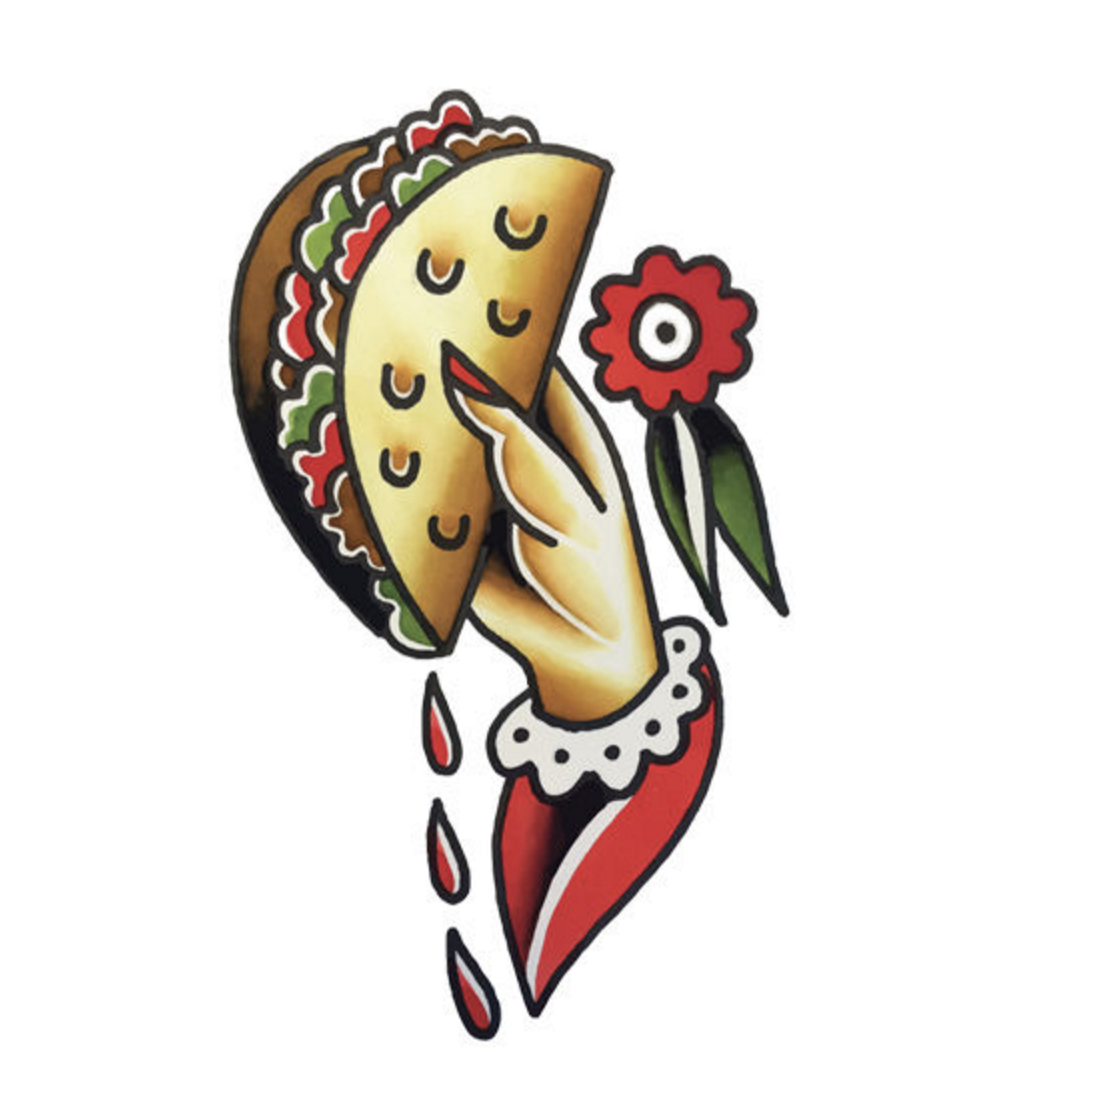 Tattly Taco To Go Tattoo on DLK | designlifekids.com